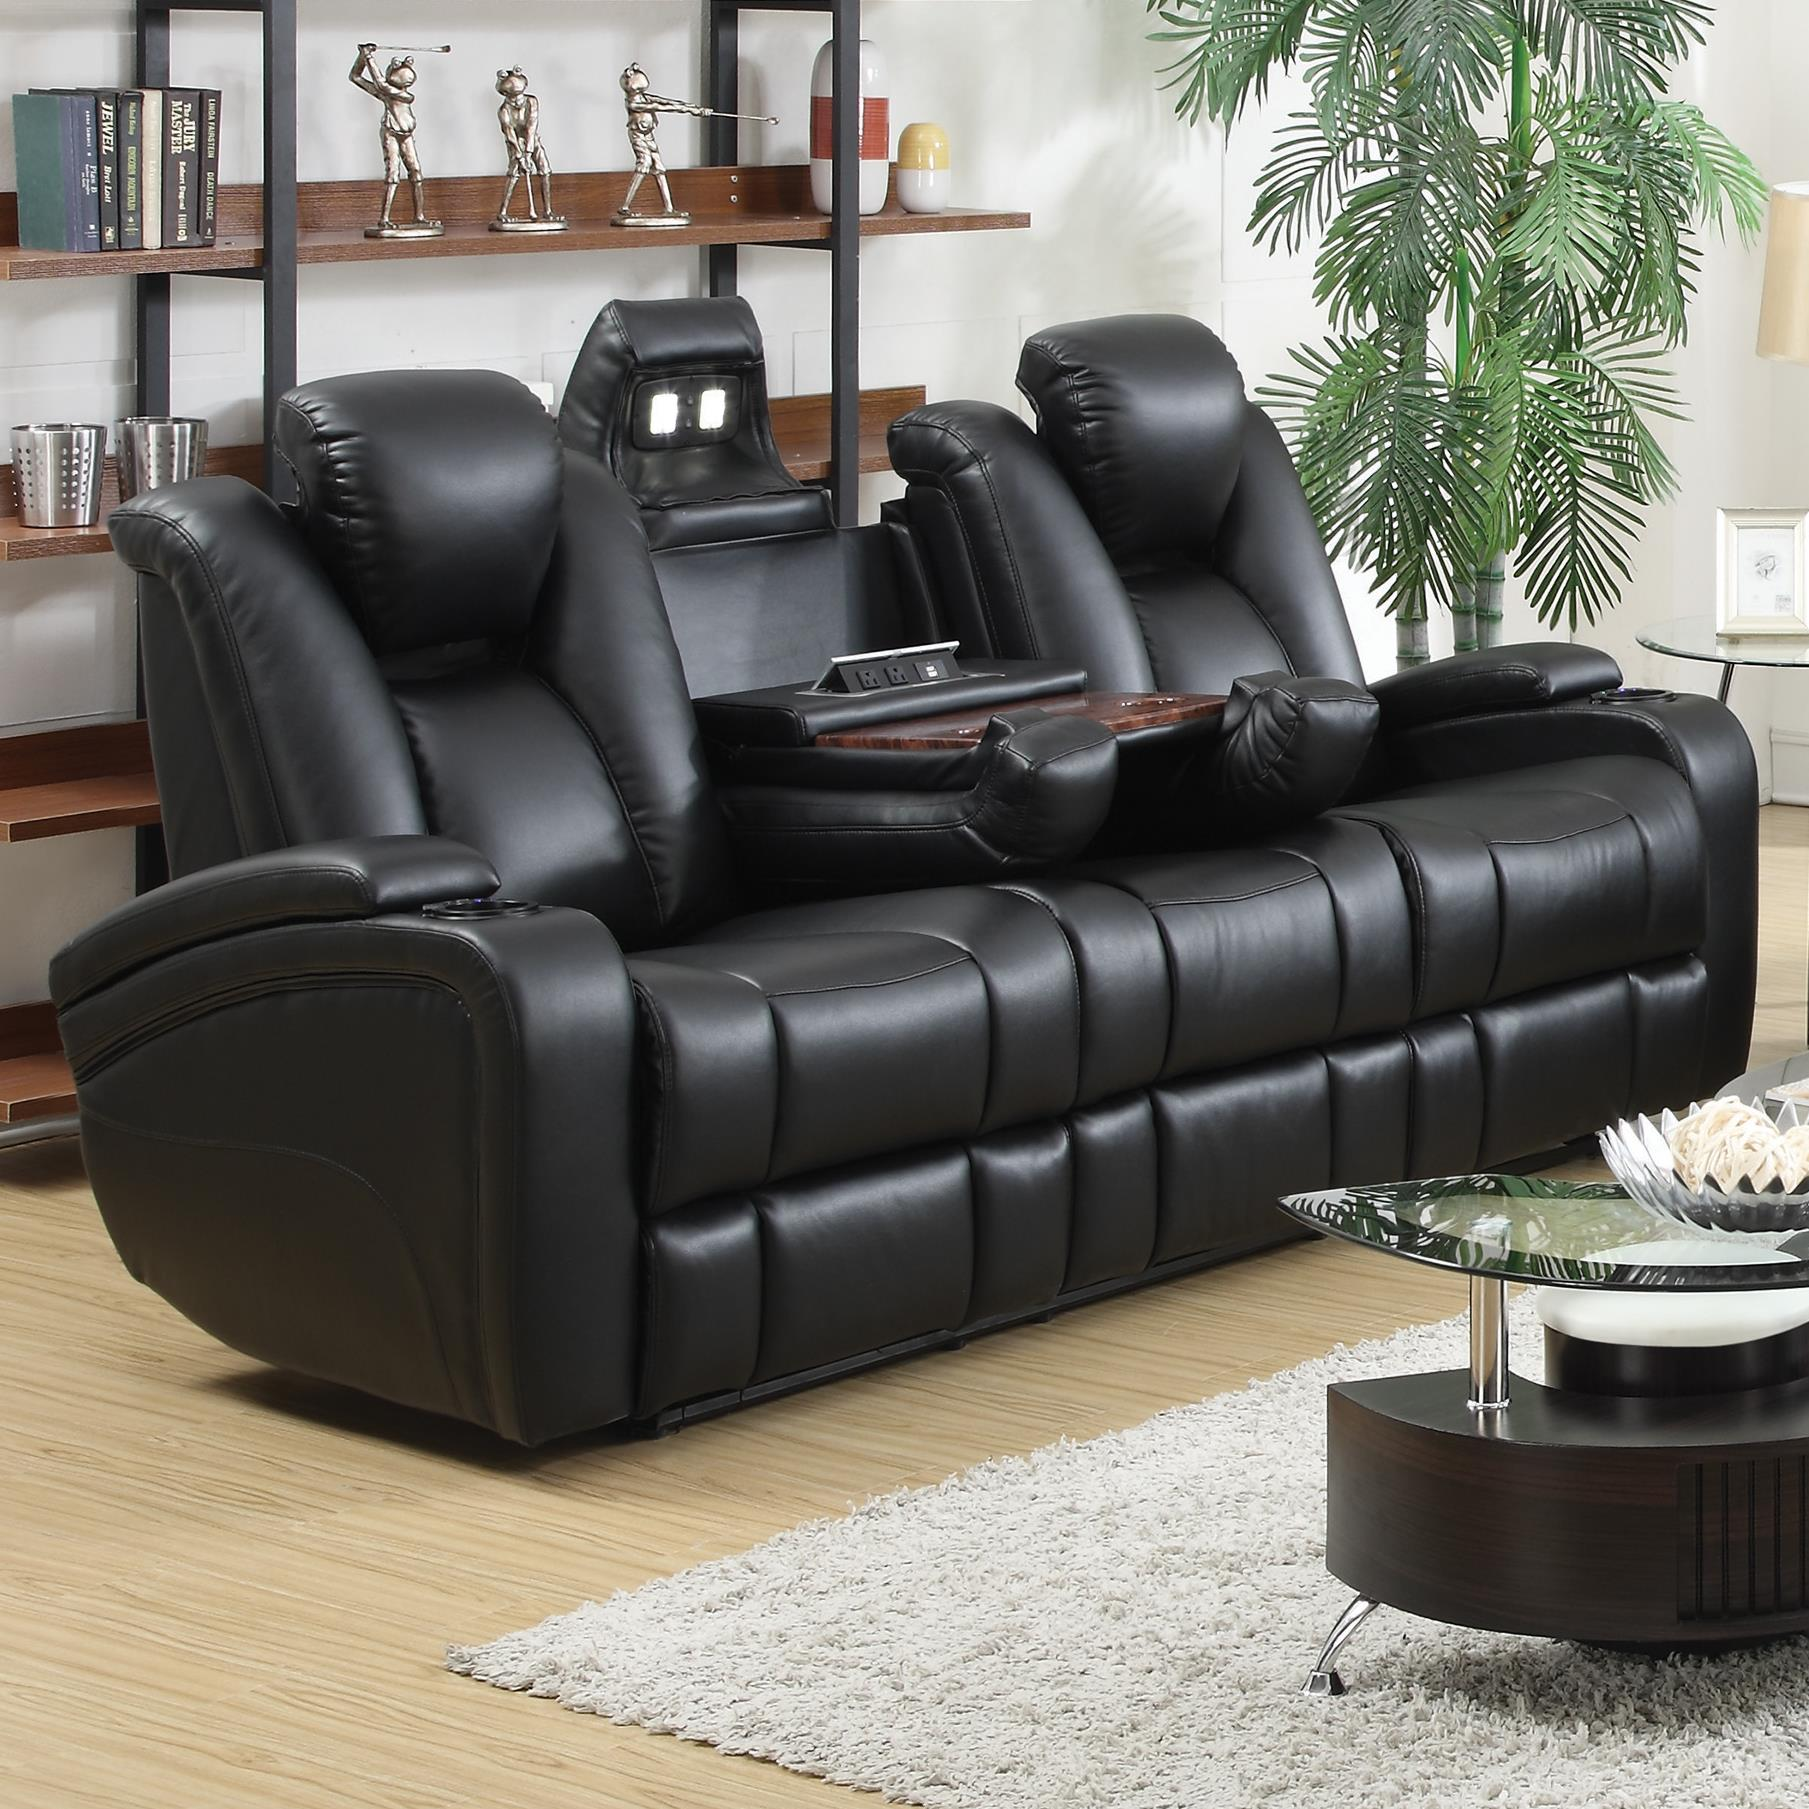 Delange leather power reclining sofa theater seats with for Affordable quality furniture